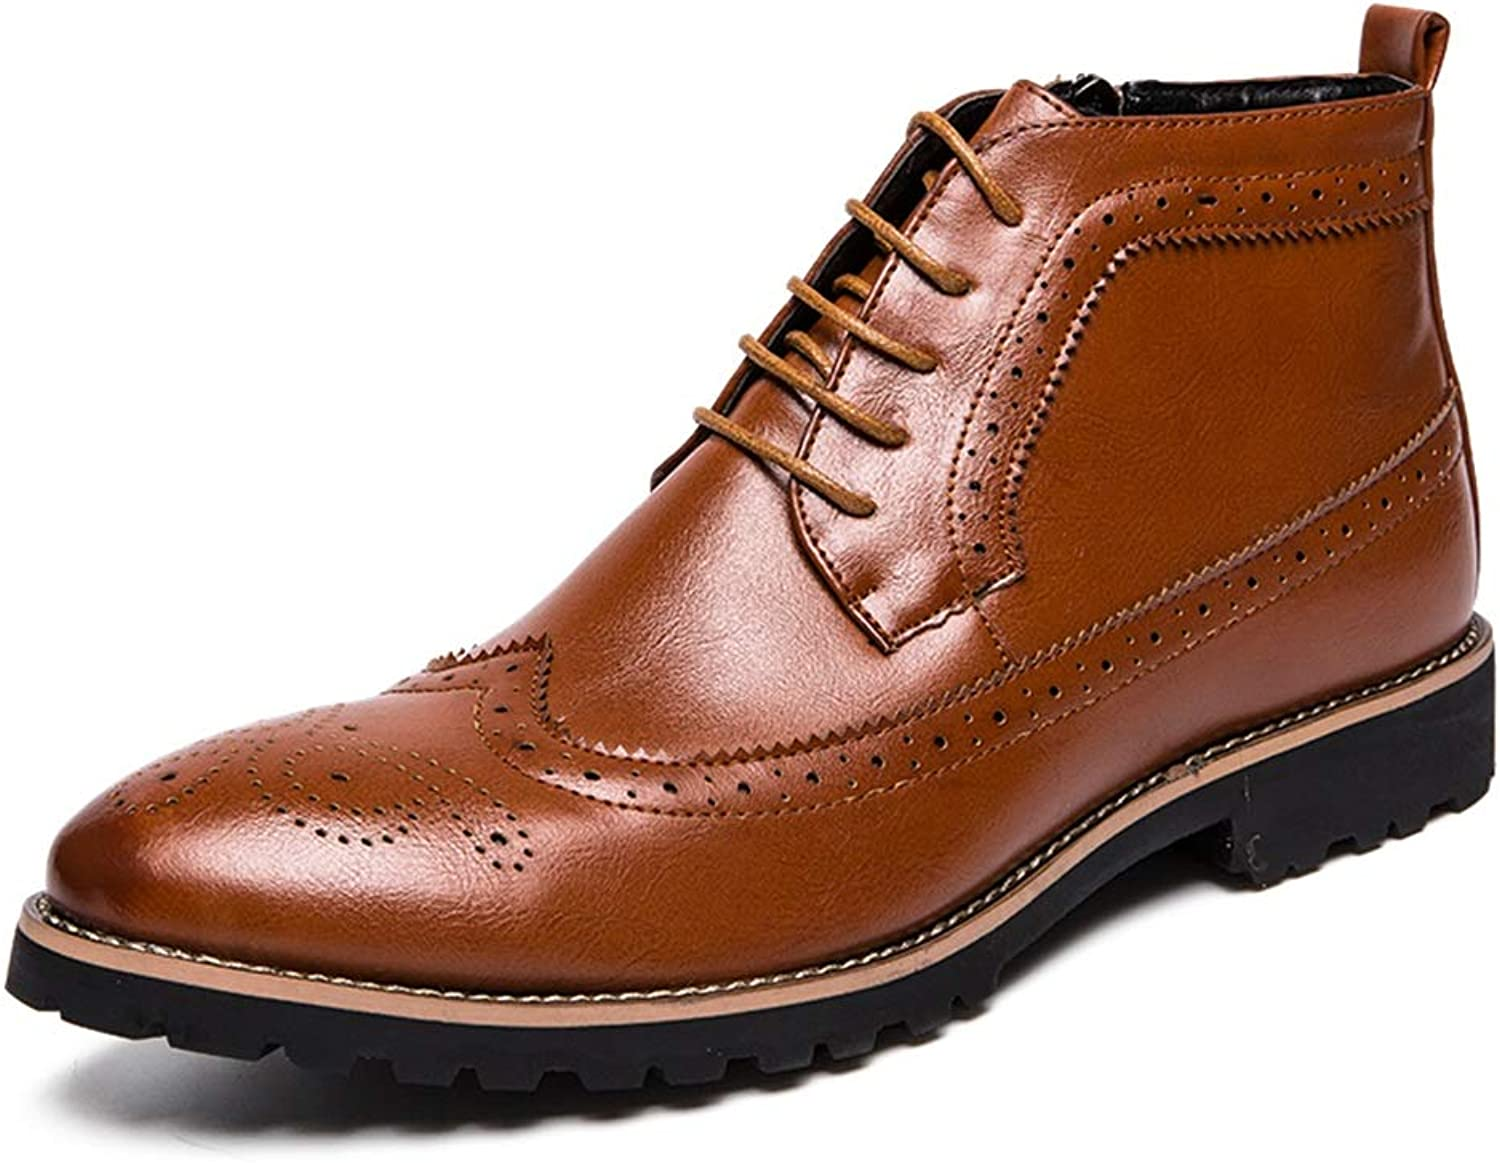 1875156d416 SRY-Fashion shoes Men's Simple Fashion Boots Casual Classic Brogue ...